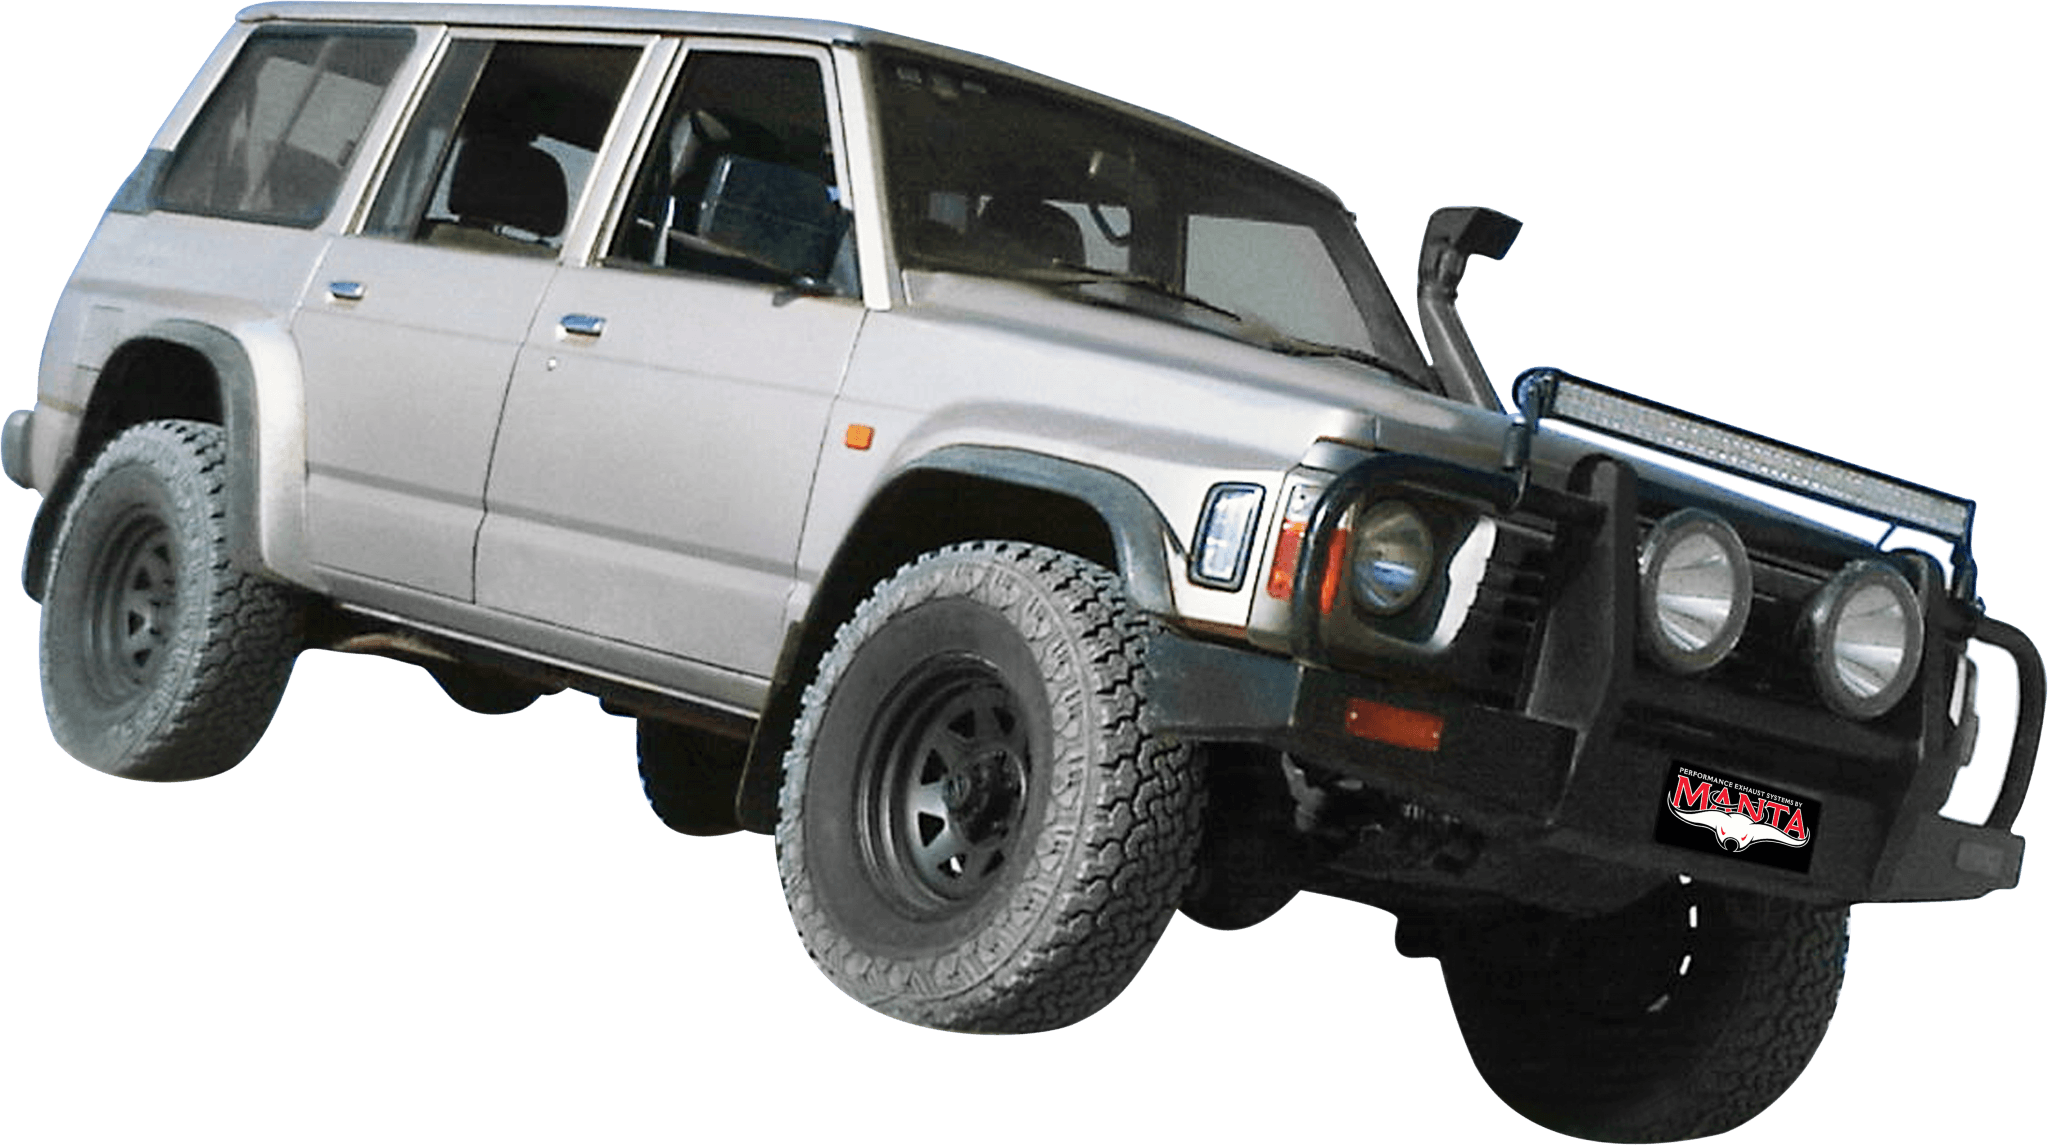 Nissan Patrol Gq 3 0l Rb30 Petrol Wagon Manta Performance